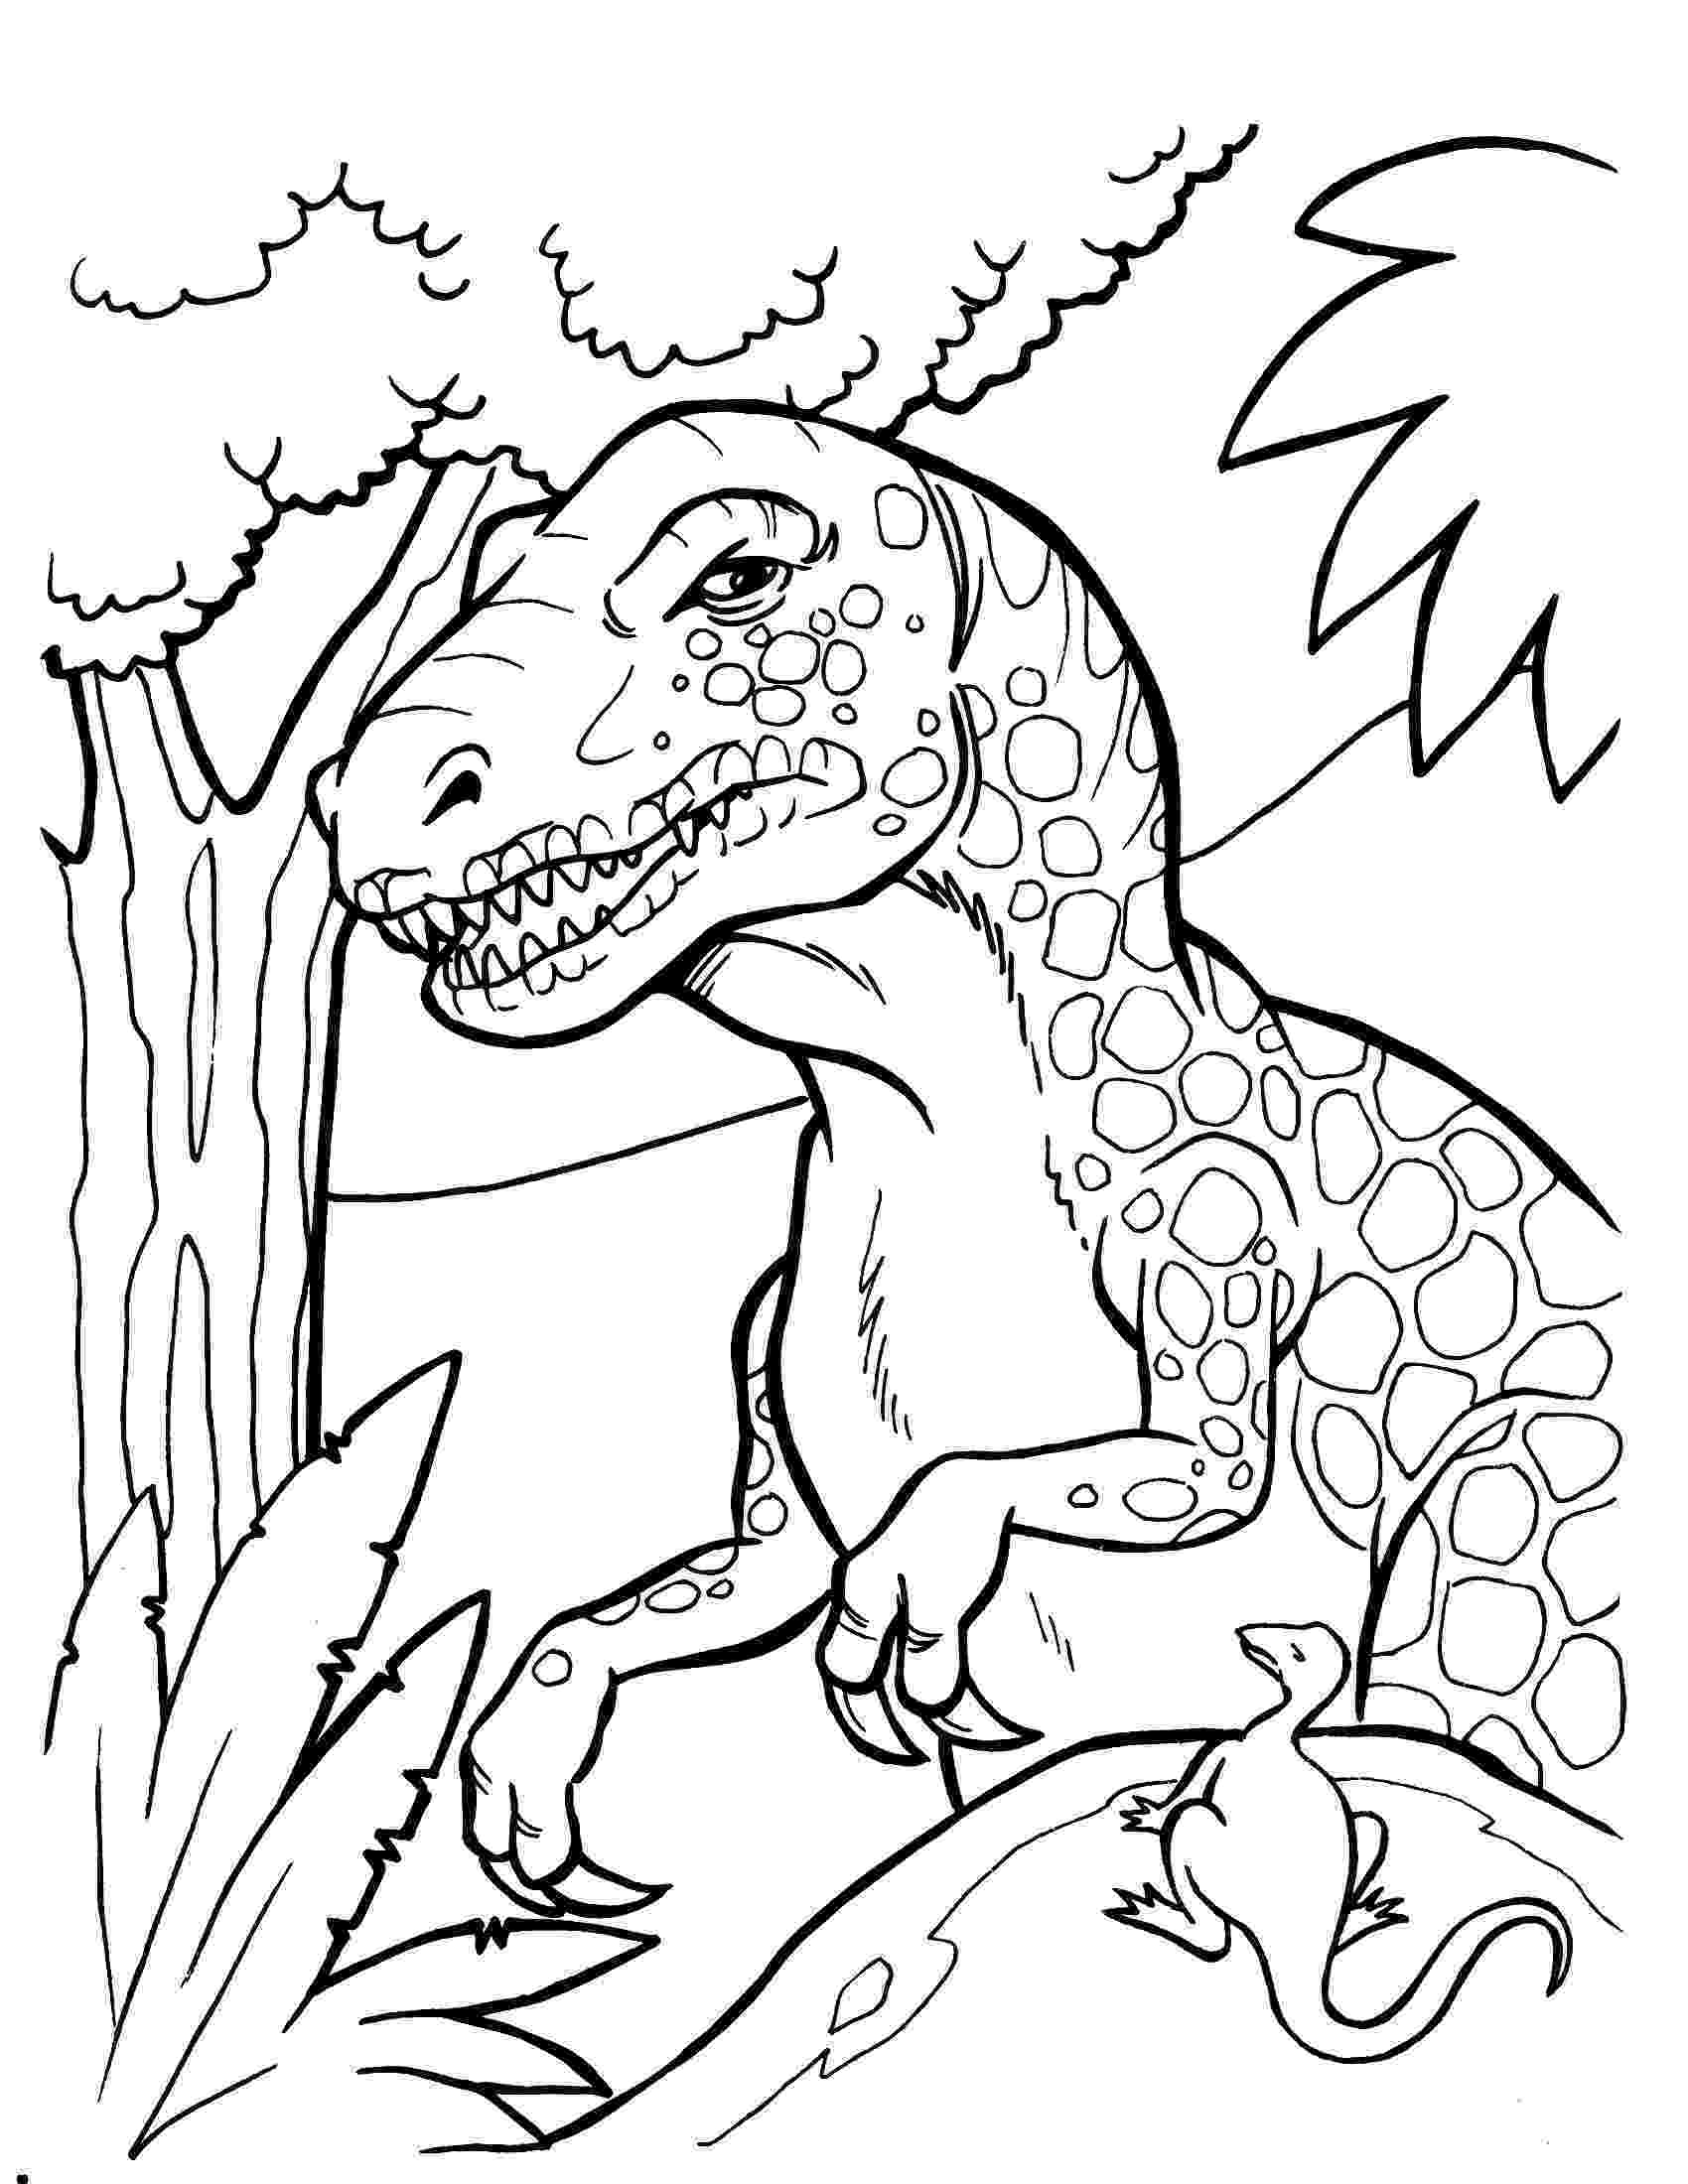 triceratops pictures to color dinosaur coloring pages to download and print for free pictures color to triceratops